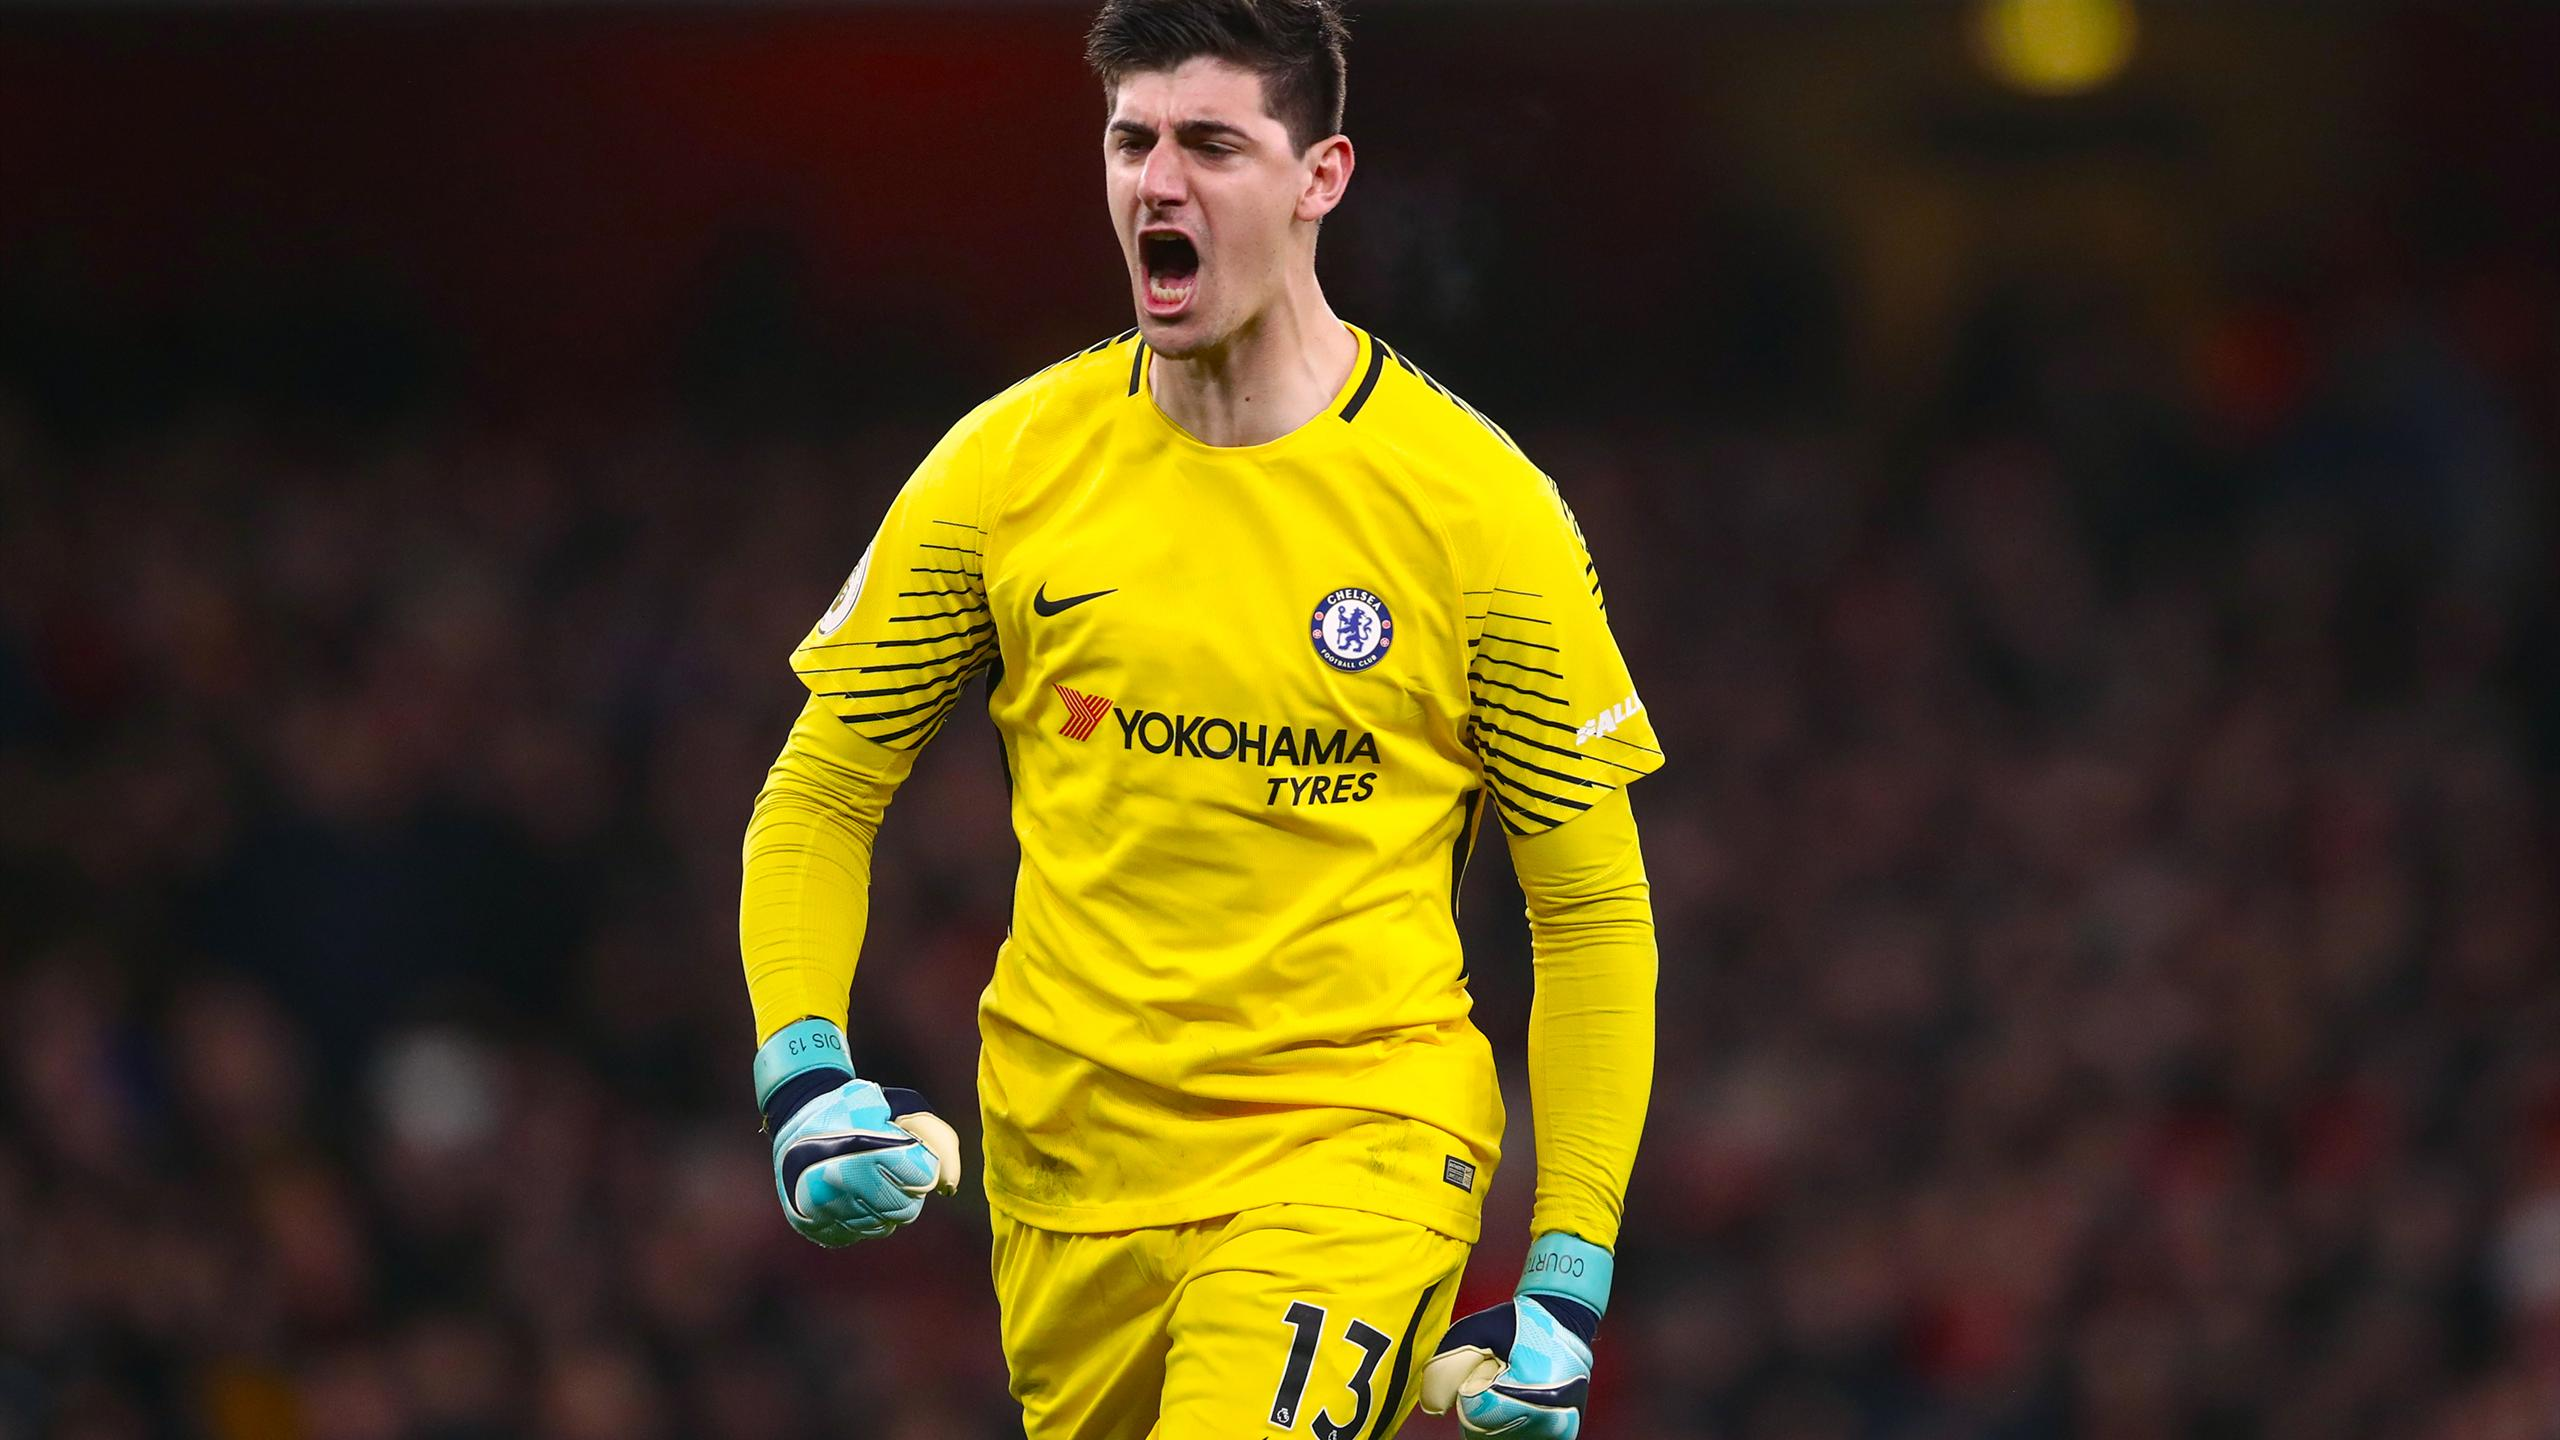 Terza Maglia Real Madrid Courtois